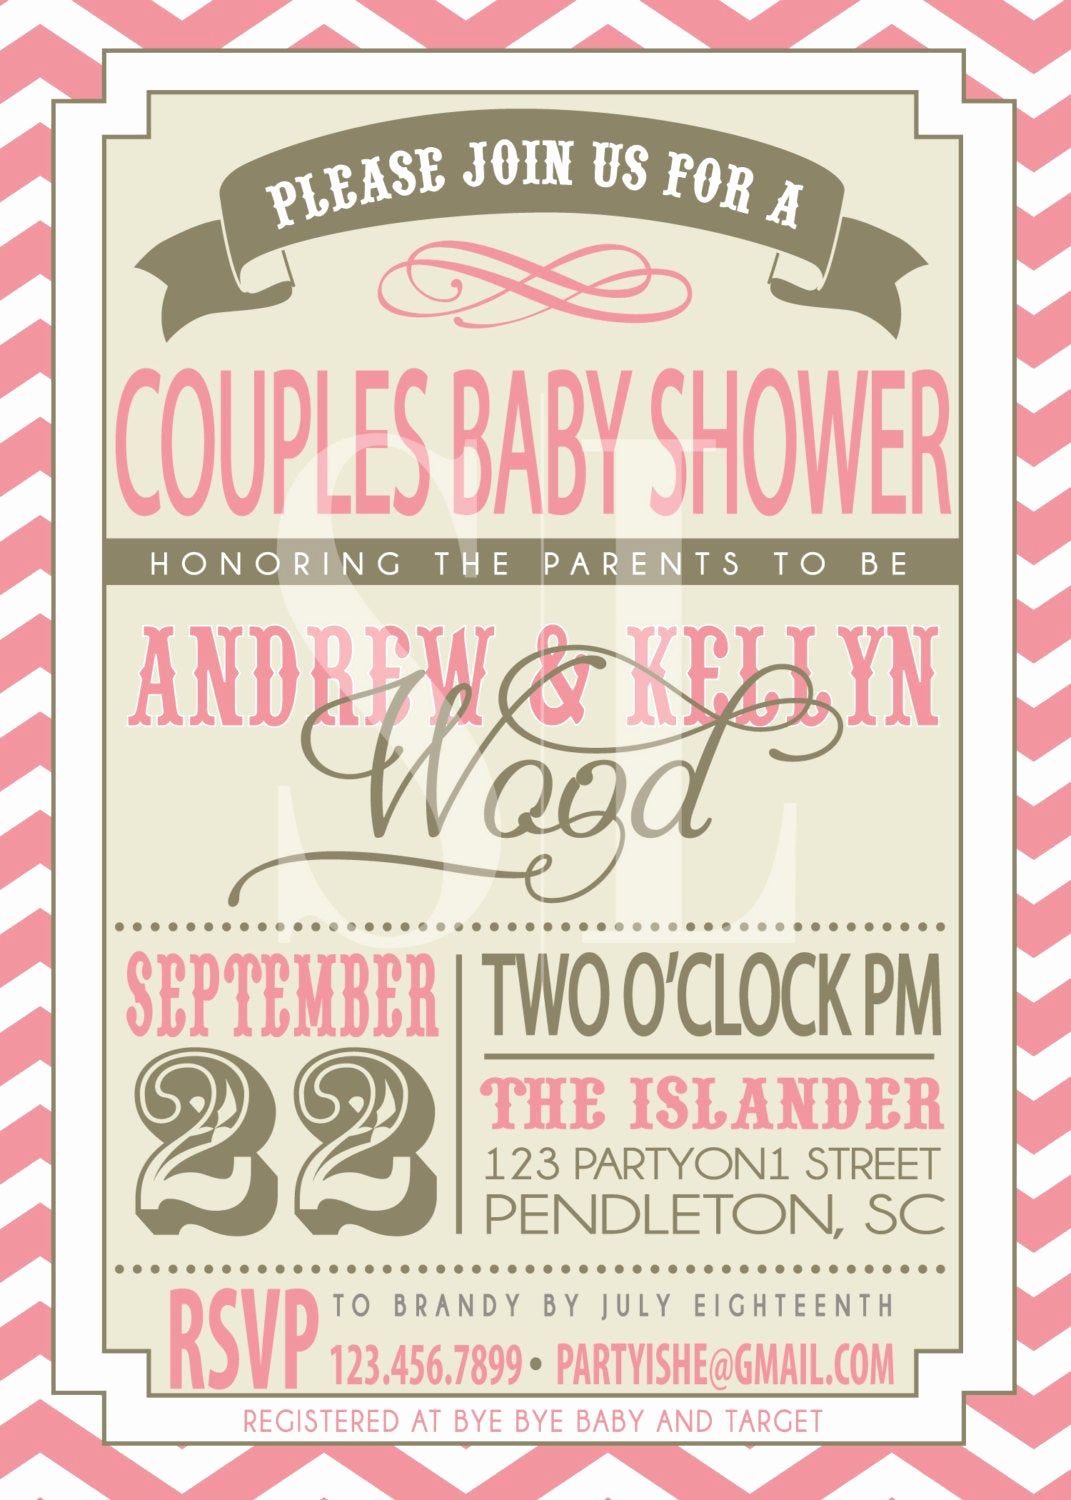 Couples Baby Shower Invitation Wording Inspirational On Sale Couples Baby Shower Invitation